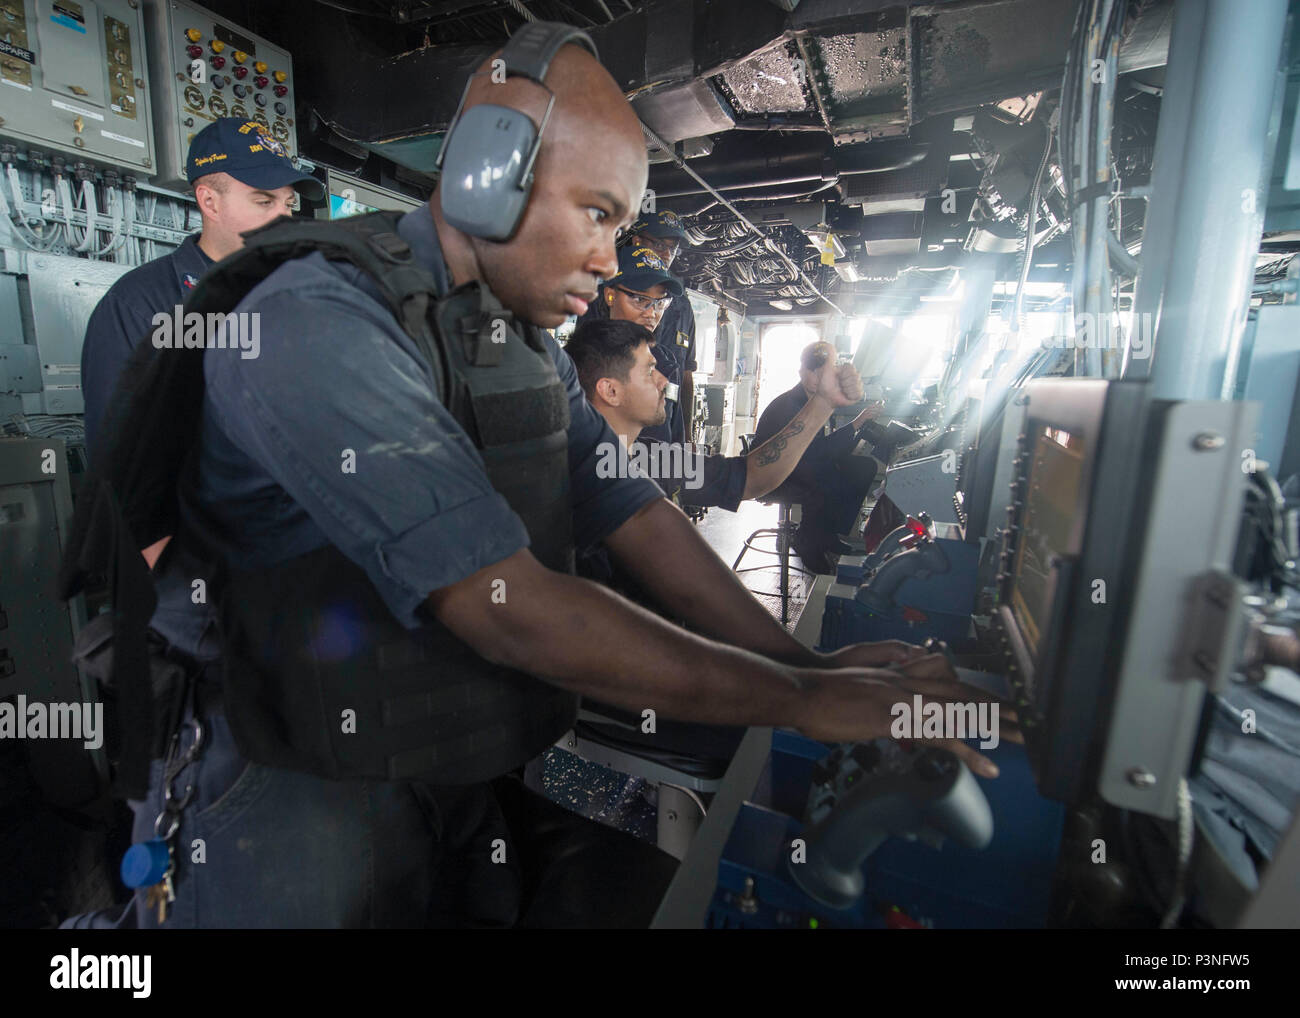 160713-N-DQ503-038    GULF OF ADEN (July 13, 2016) – Gunner's Mate 2nd Class Allen Marshall fires the MK 38 25MM machine gun aboard the guided-missile destroyer USS Roosevelt (DDG 80) during a live-fire exercise. Roosevelt, deployed as part of the Eisenhower Carrier Strike Group, is supporting maritime security operations and theater security cooperation efforts in the U.S. 5th Fleet area of operations. (U.S. Navy Photo by Mass Communication Specialist 3rd Class Taylor A. Elberg/Released) - Stock Image